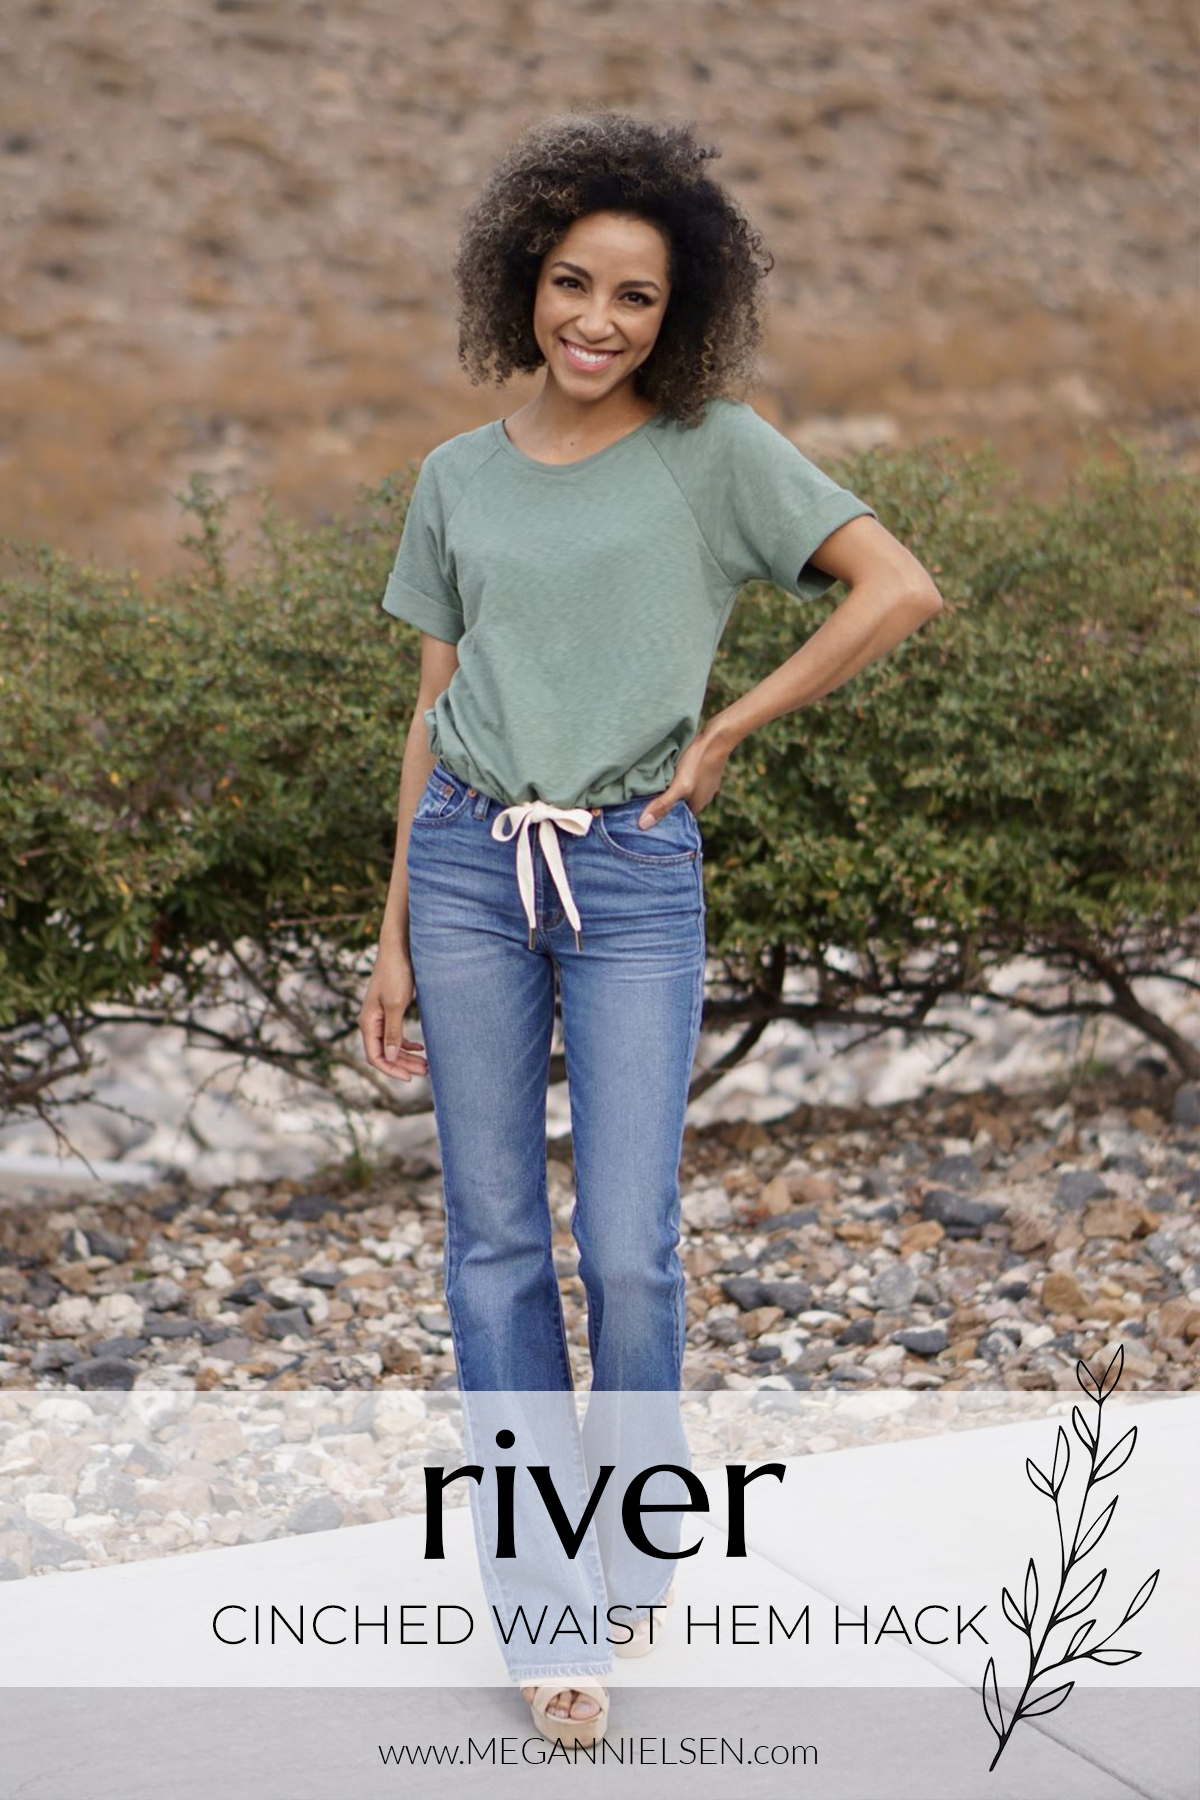 River cinched hem hack titled card